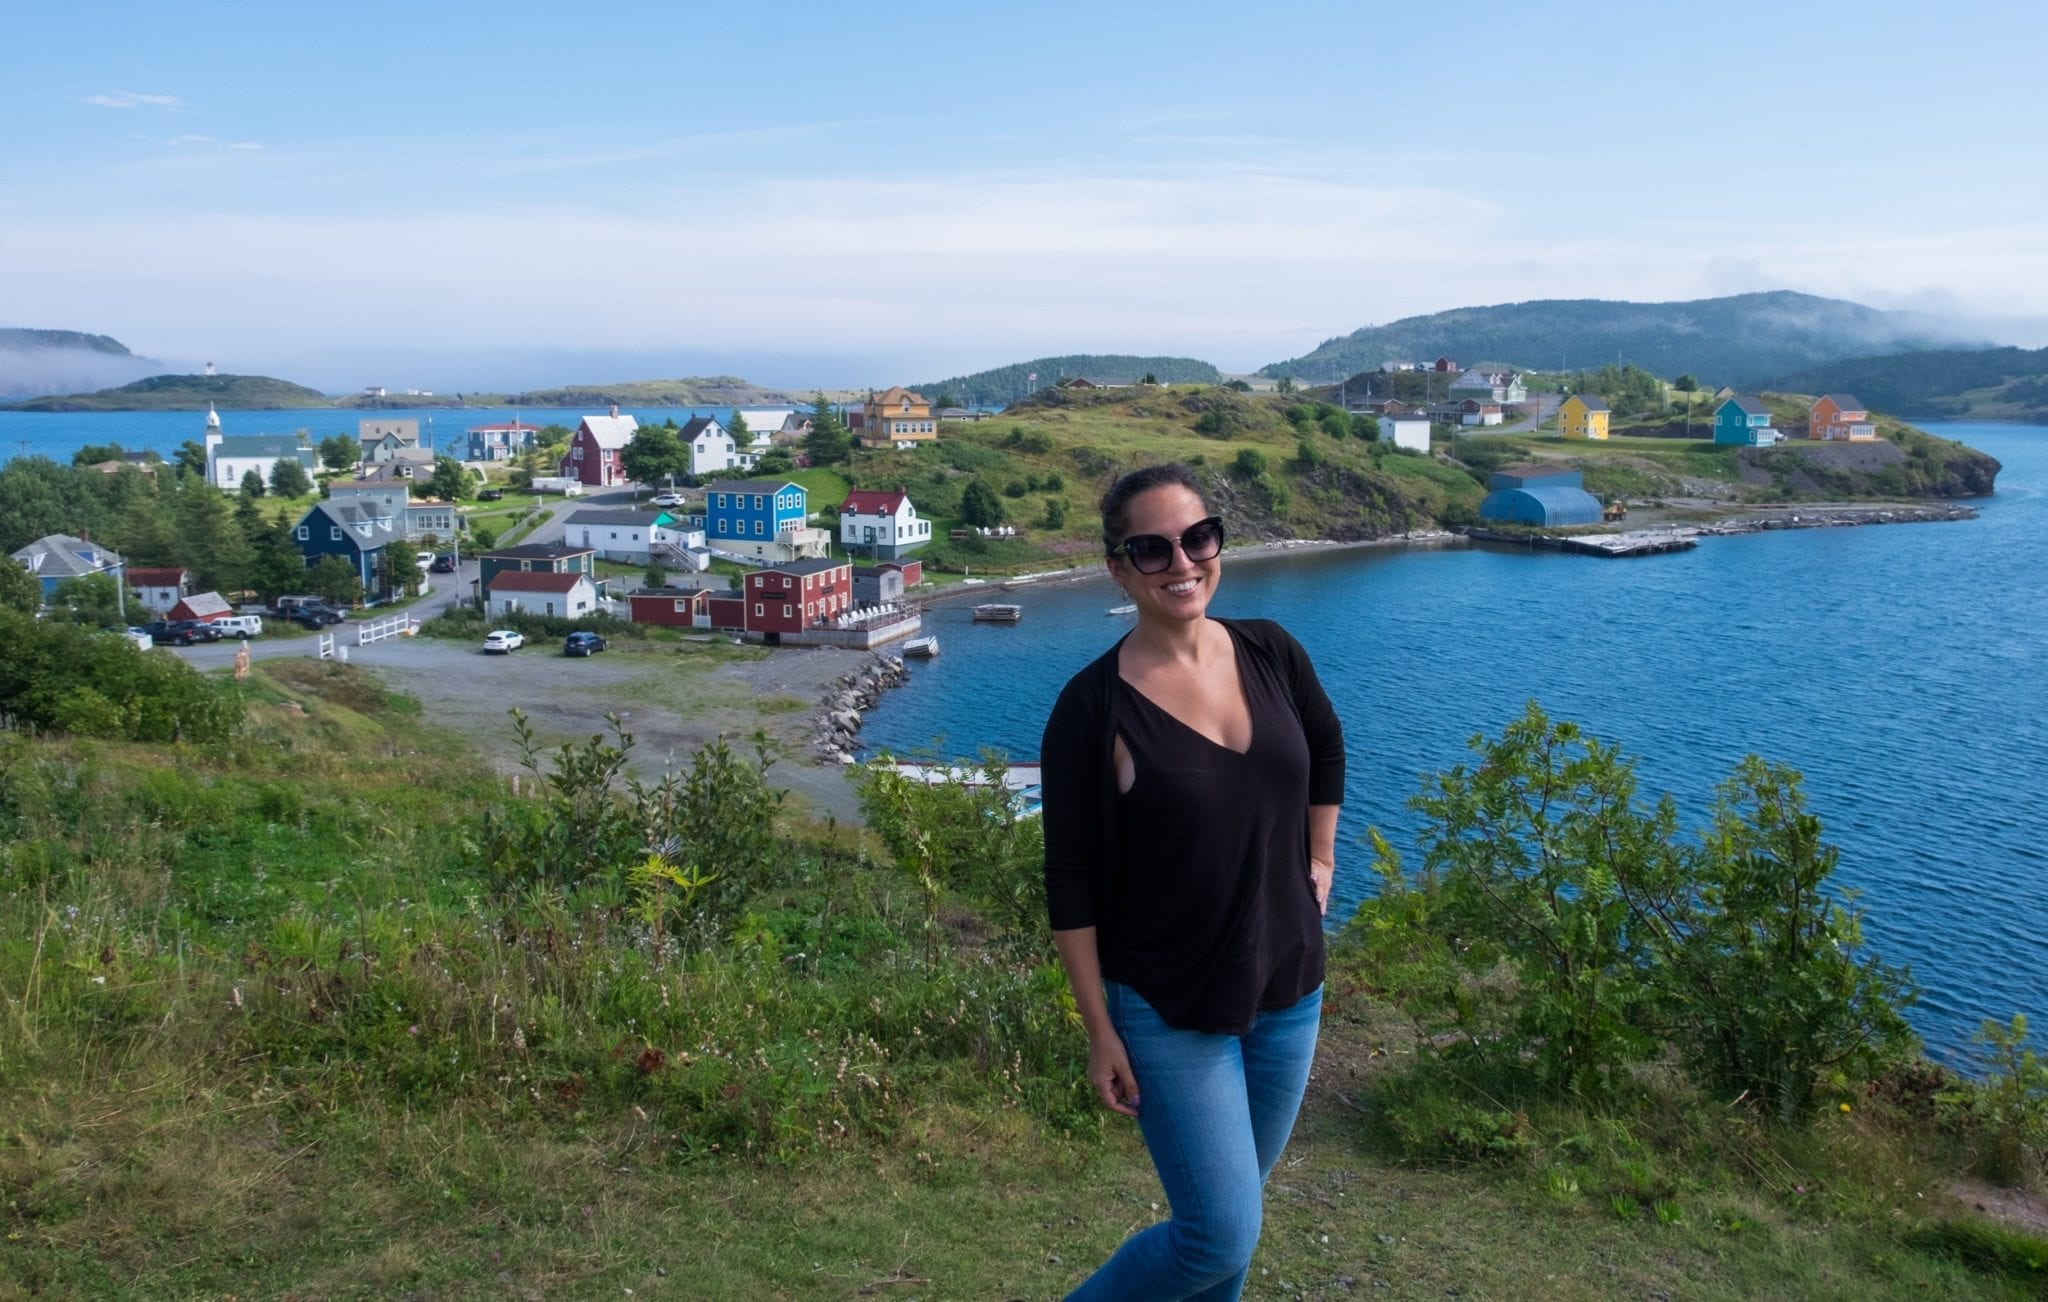 Kate stands in front of the a colorful village on a grassy peninsula surrounded by a bright blue bay.